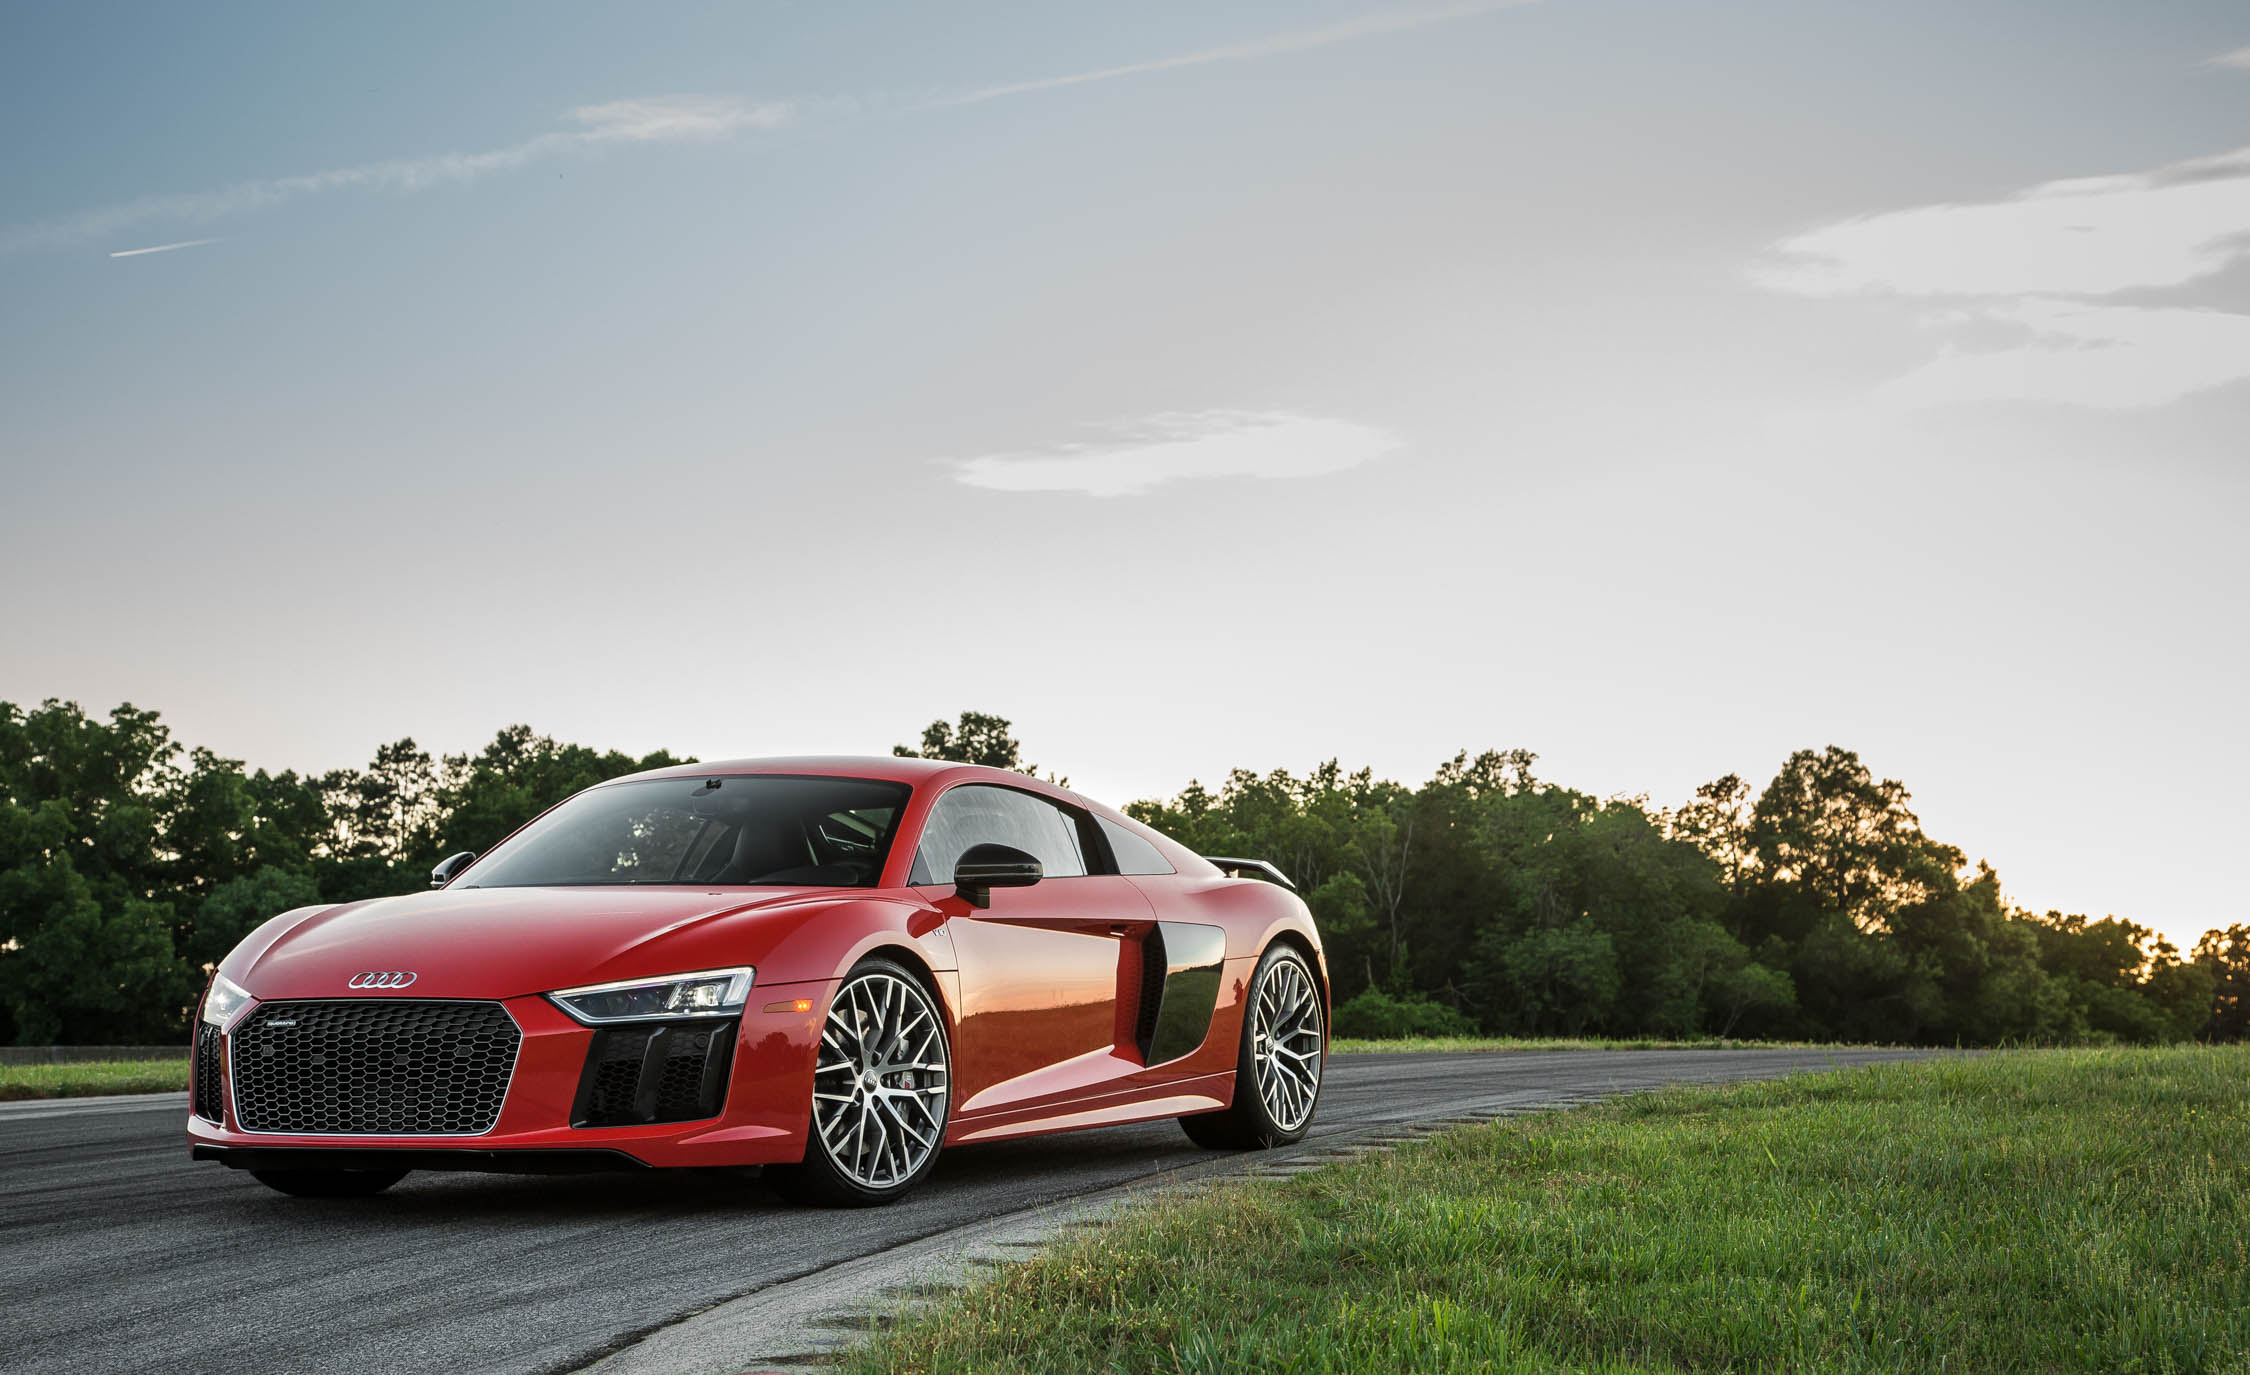 2017 Audi R8 V 10 Plus (Photo 3 of 19)